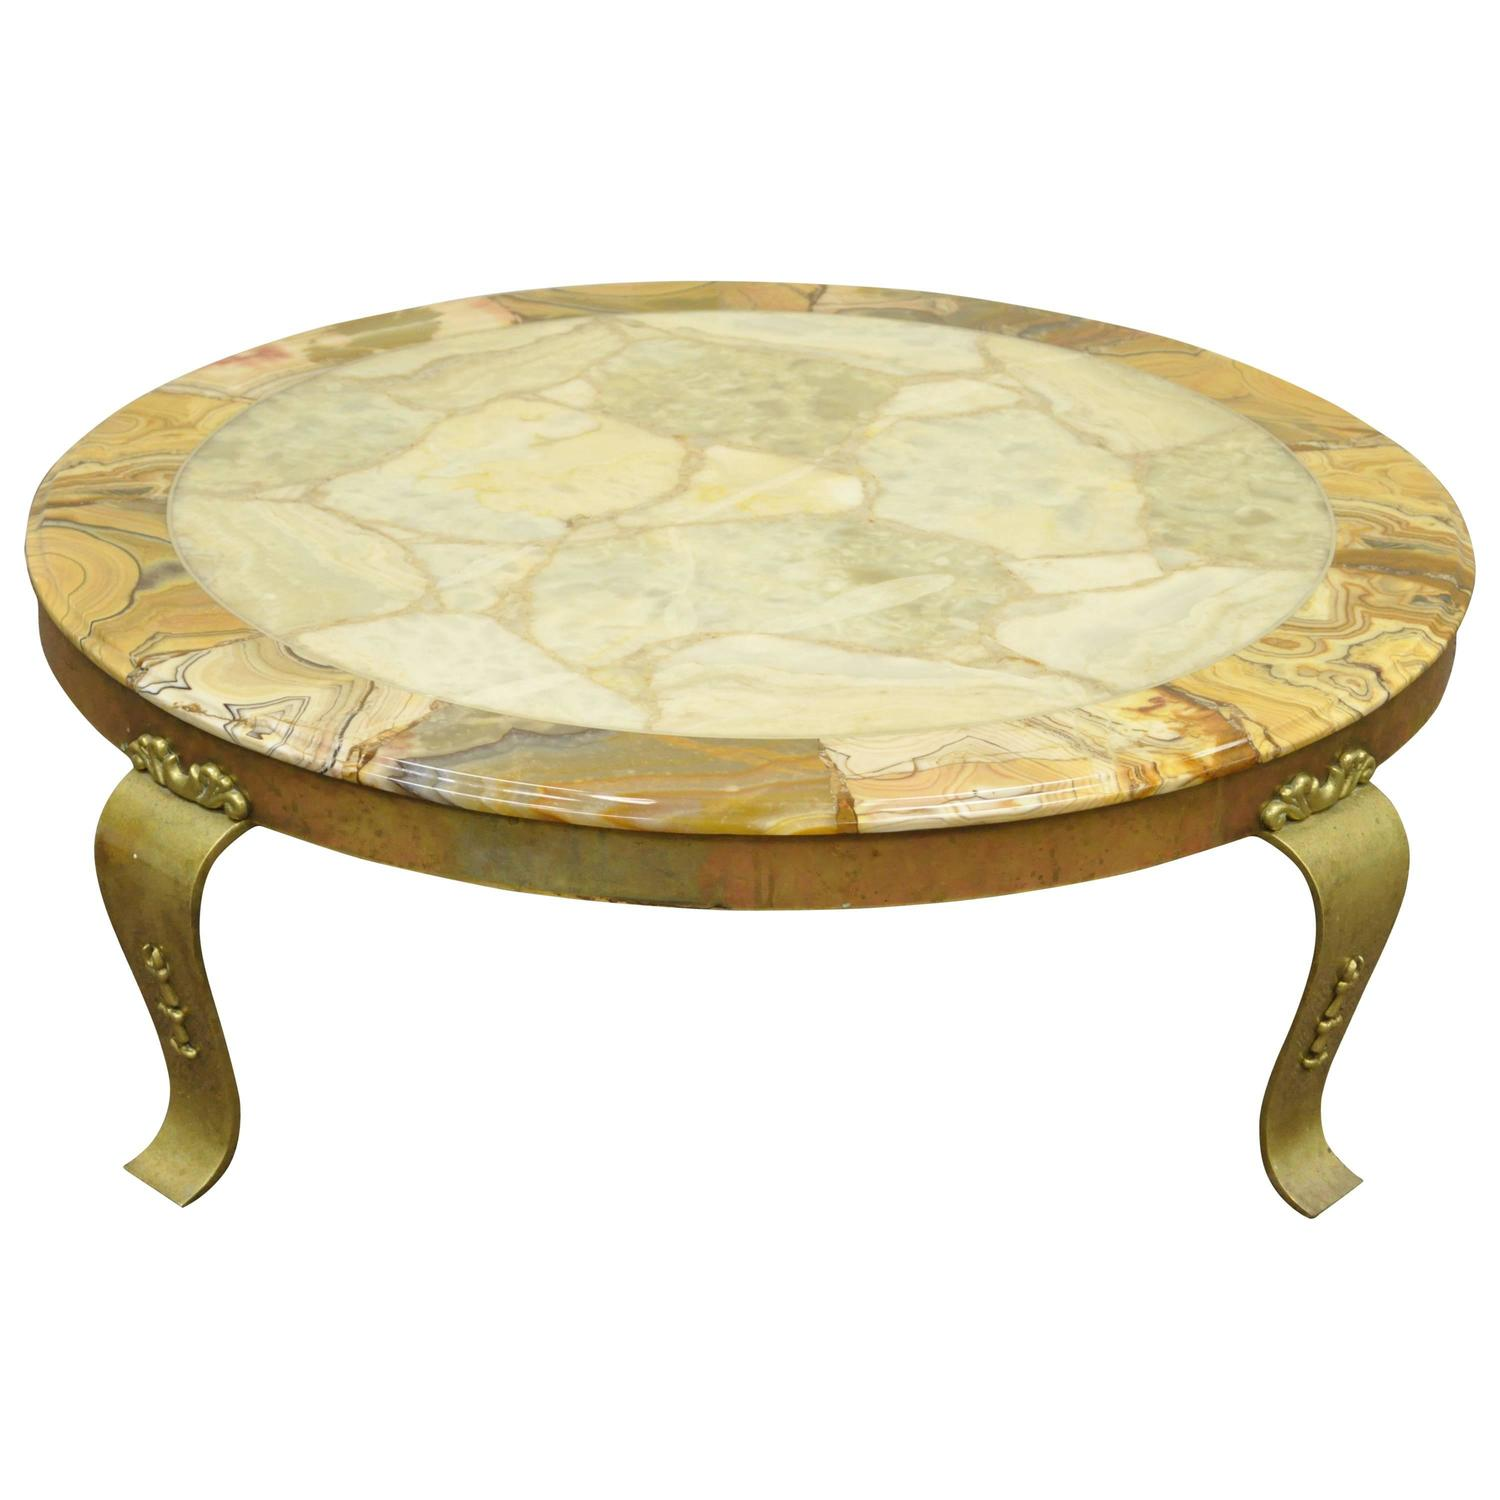 Muller Faux Marble Stone Coffee Table Hand Painted Lacquer Grey